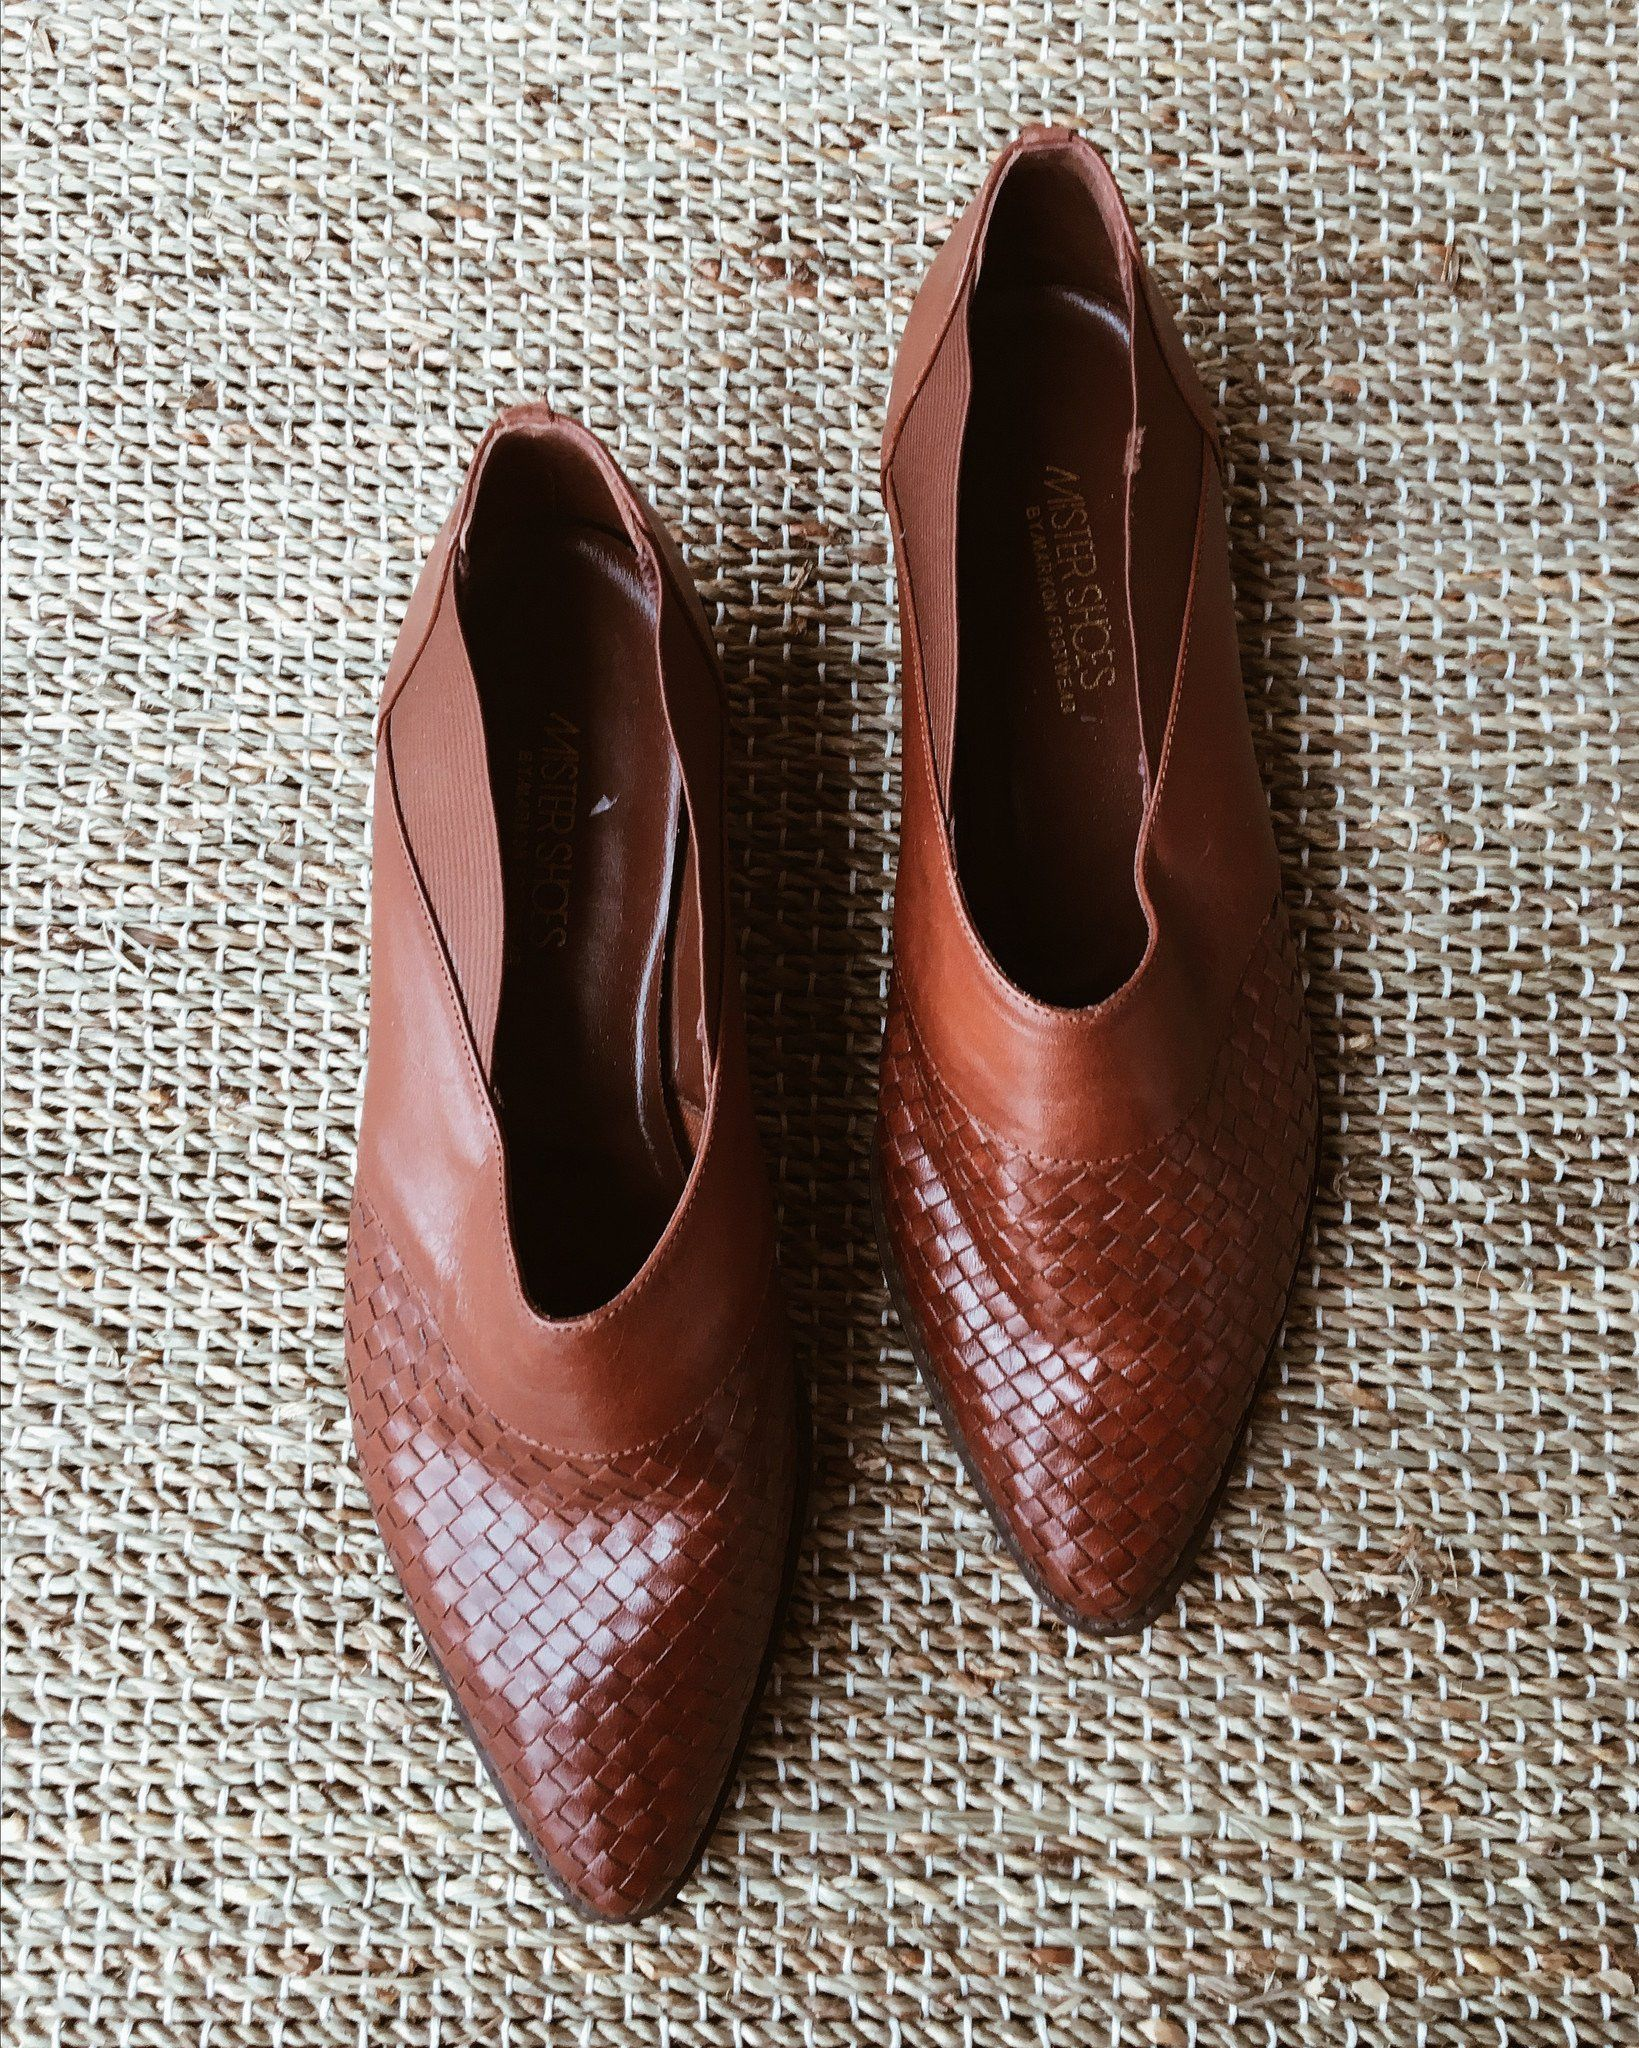 Vintage Woven Loafers - Size 7.5